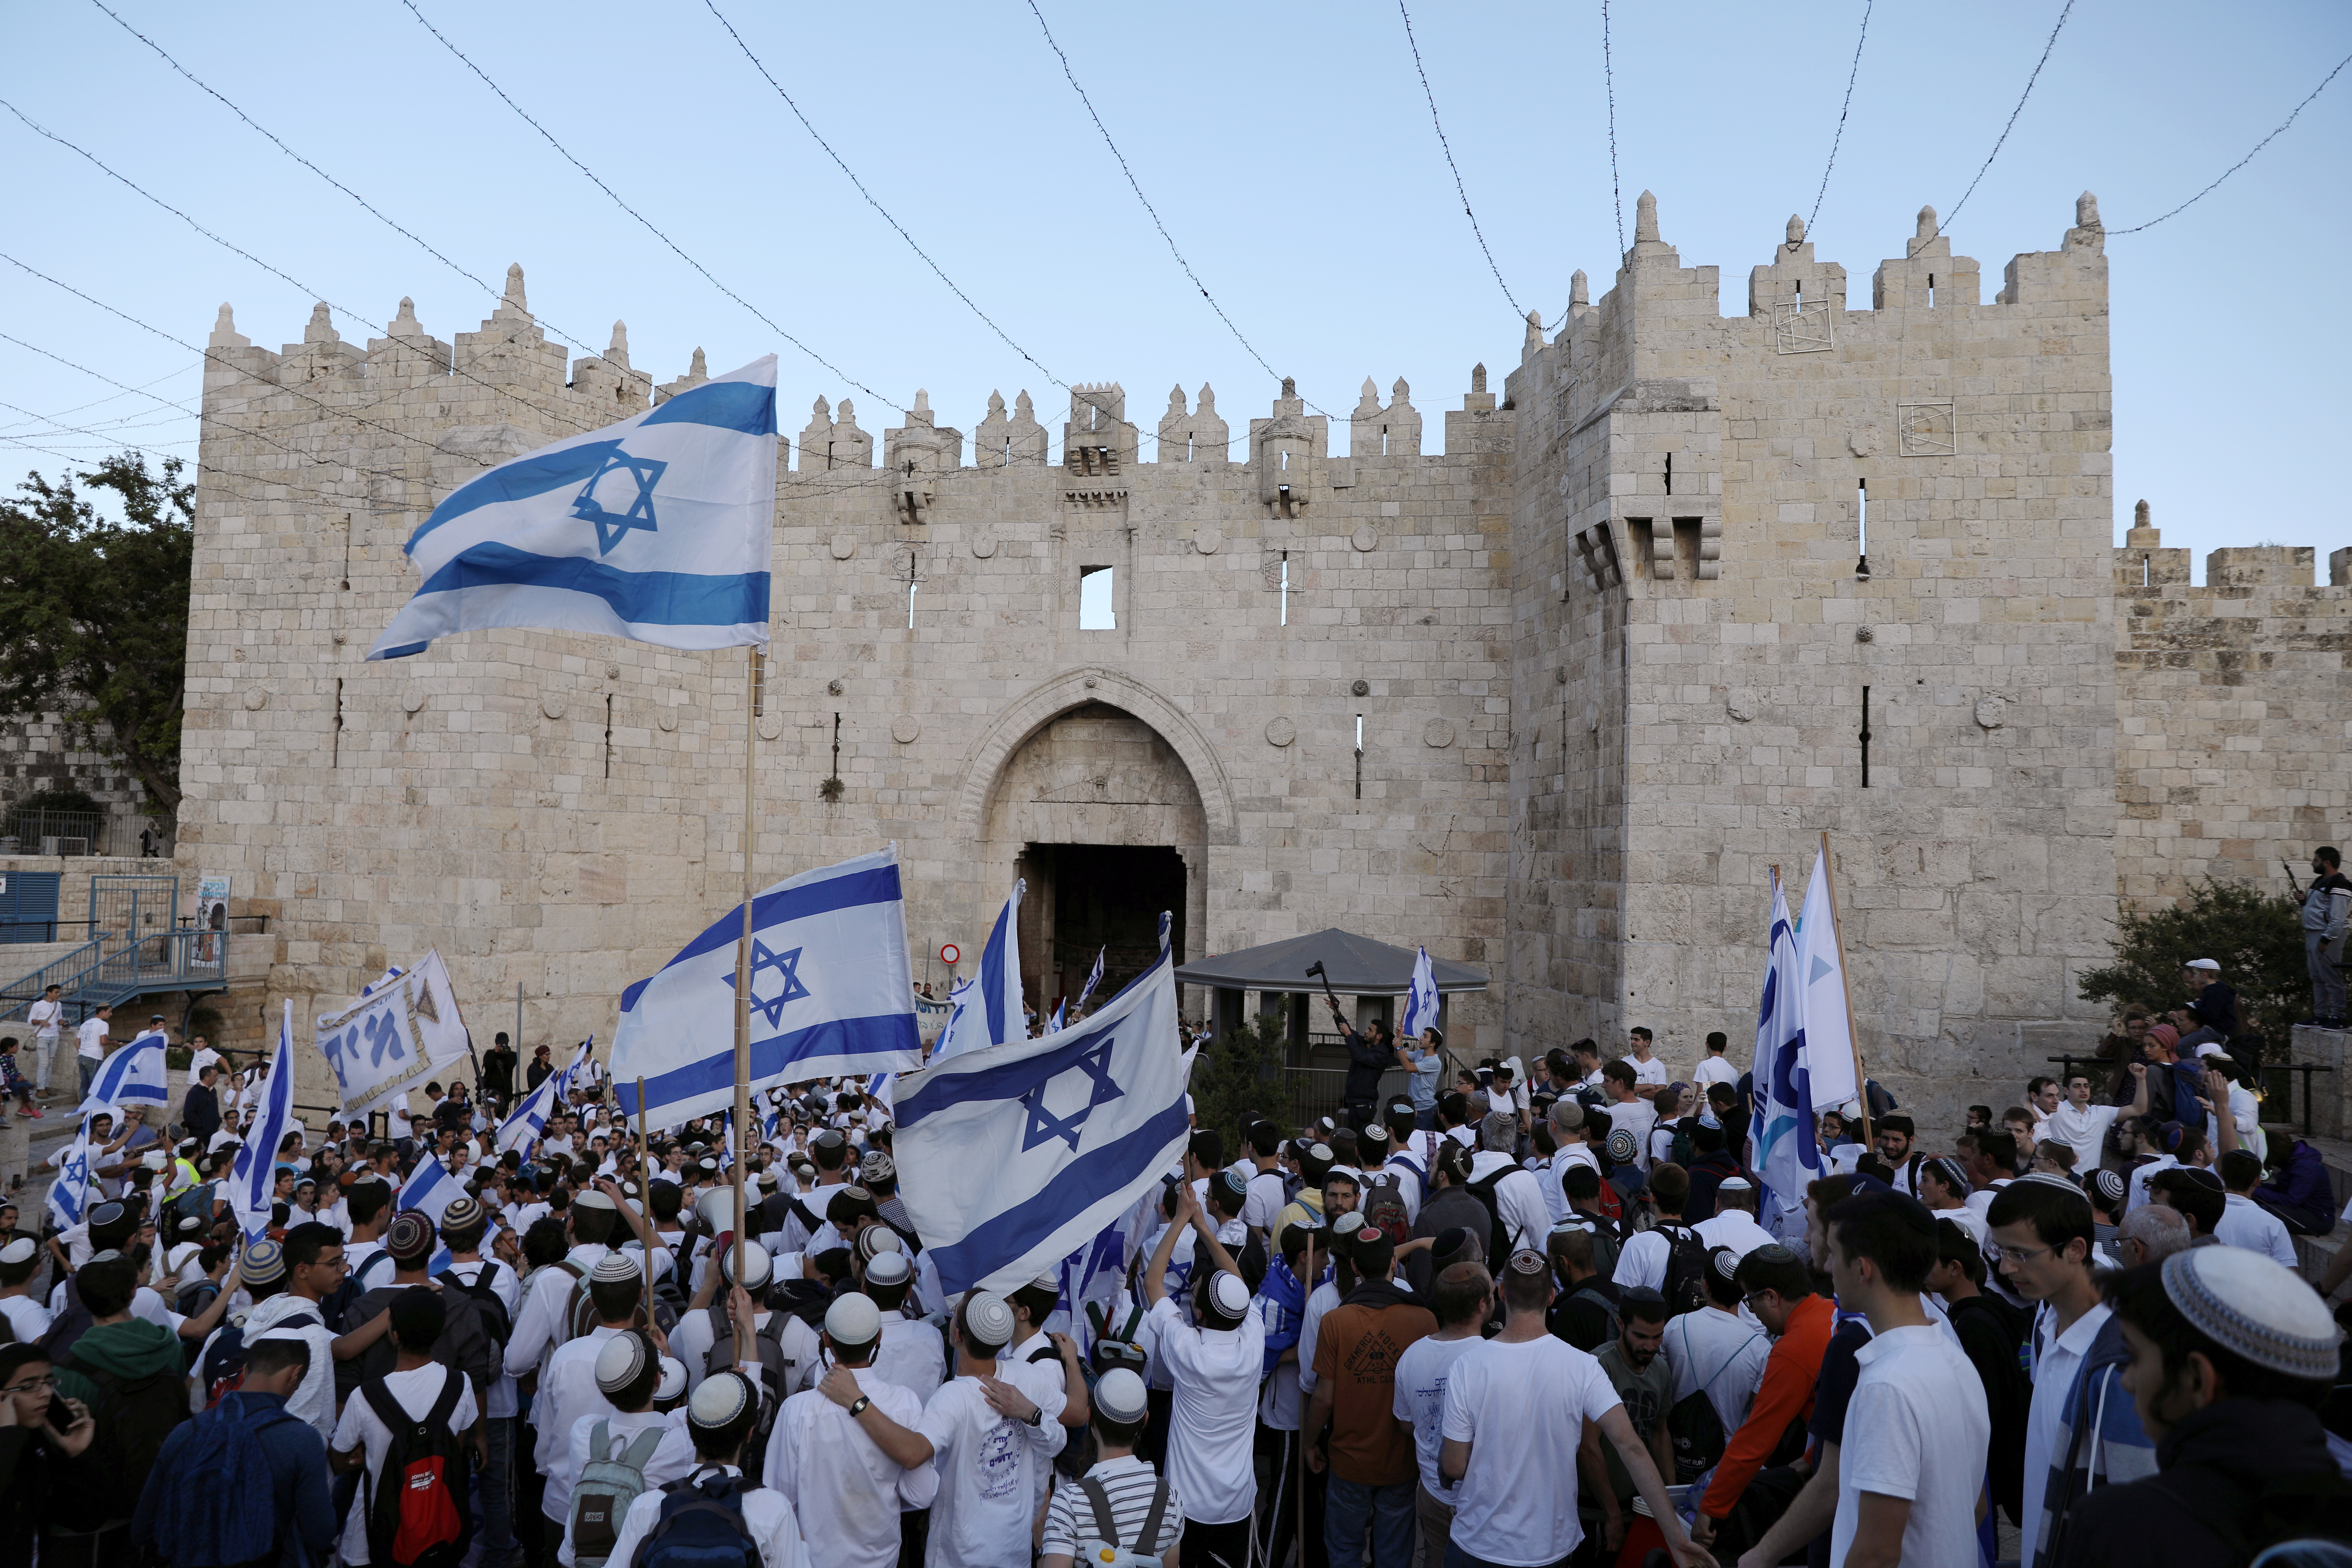 Israelis celebrate as they hold Israeli flags during a parade marking the annual Jerusalem Day, at Damascus Gate in Jerusalem's Old City, May 13, 2018. REUTERS/Ammar Awad - RC1A6A0D5F10